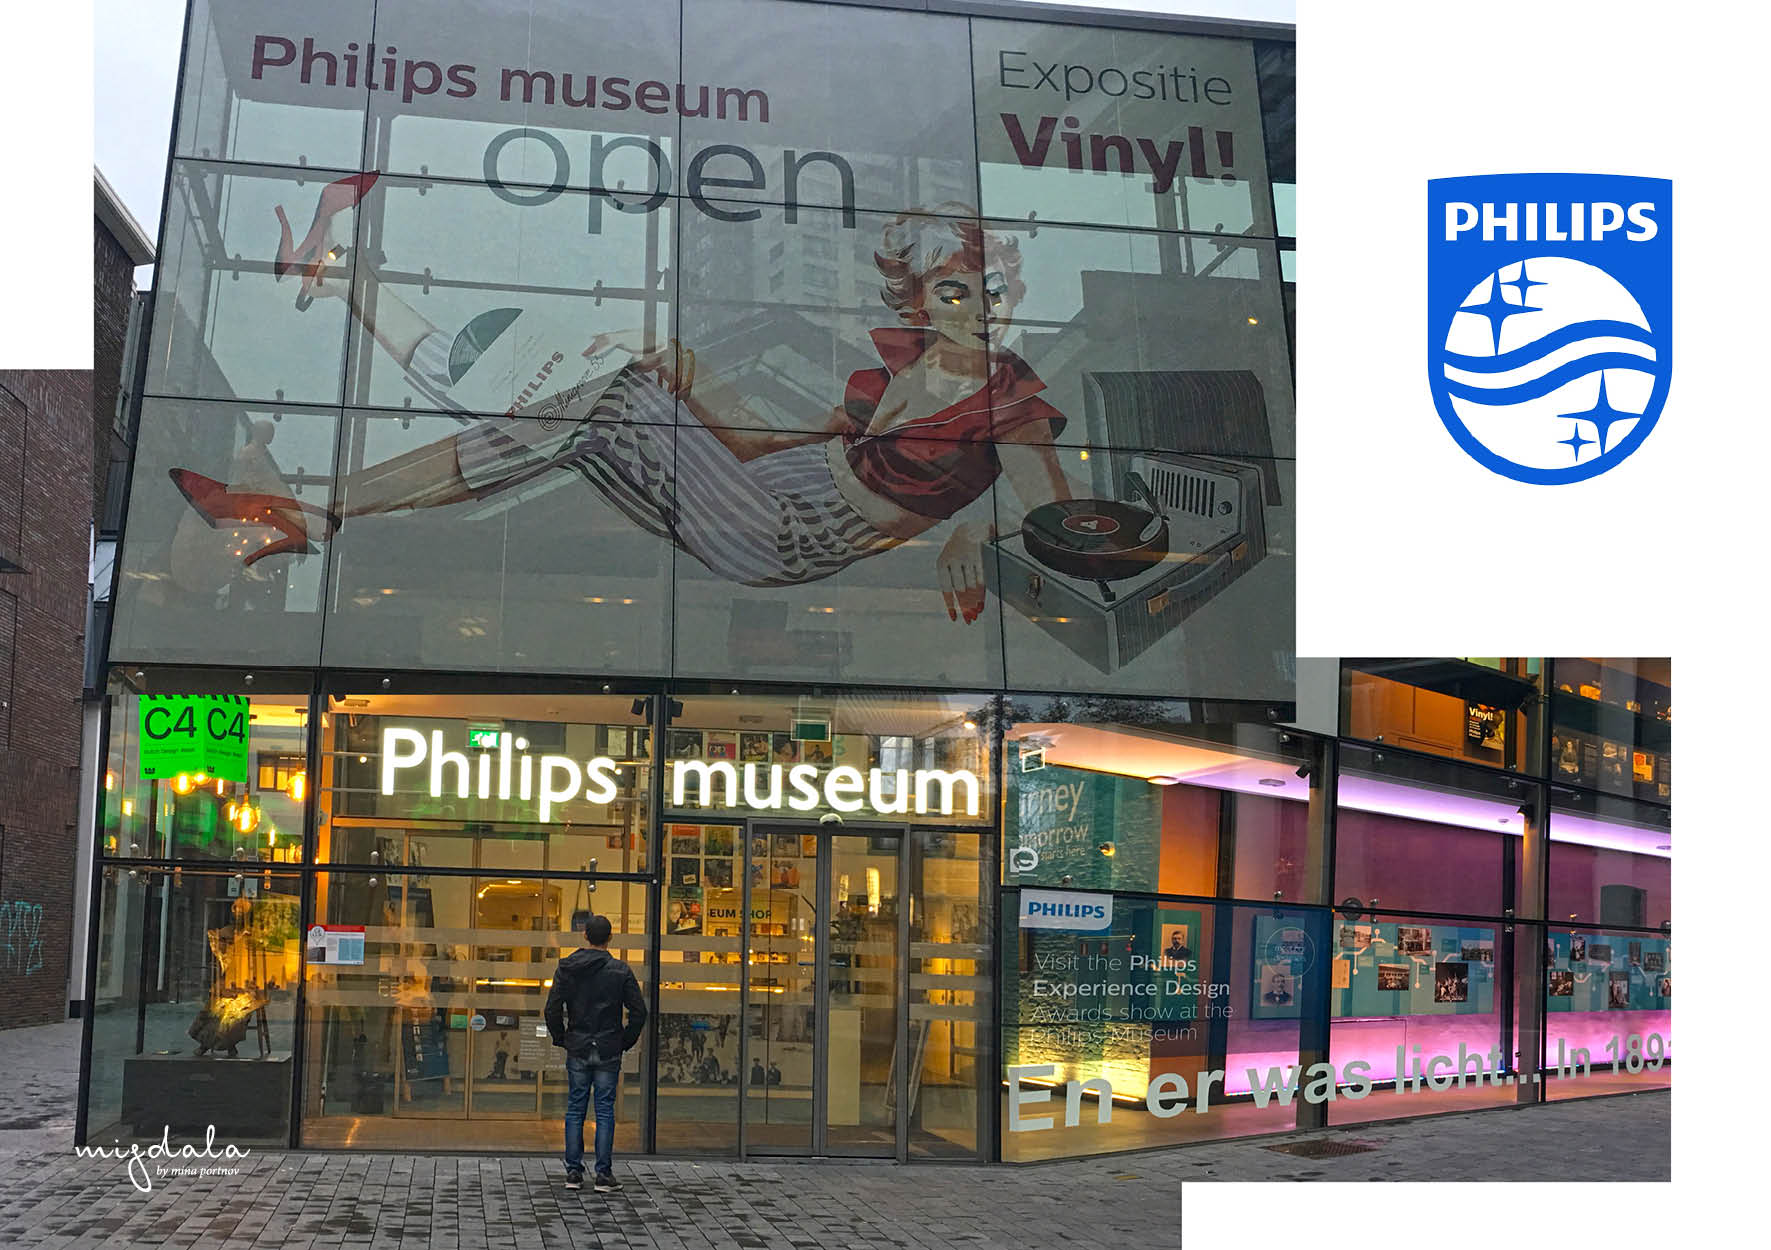 Philips museum, Eindhohven